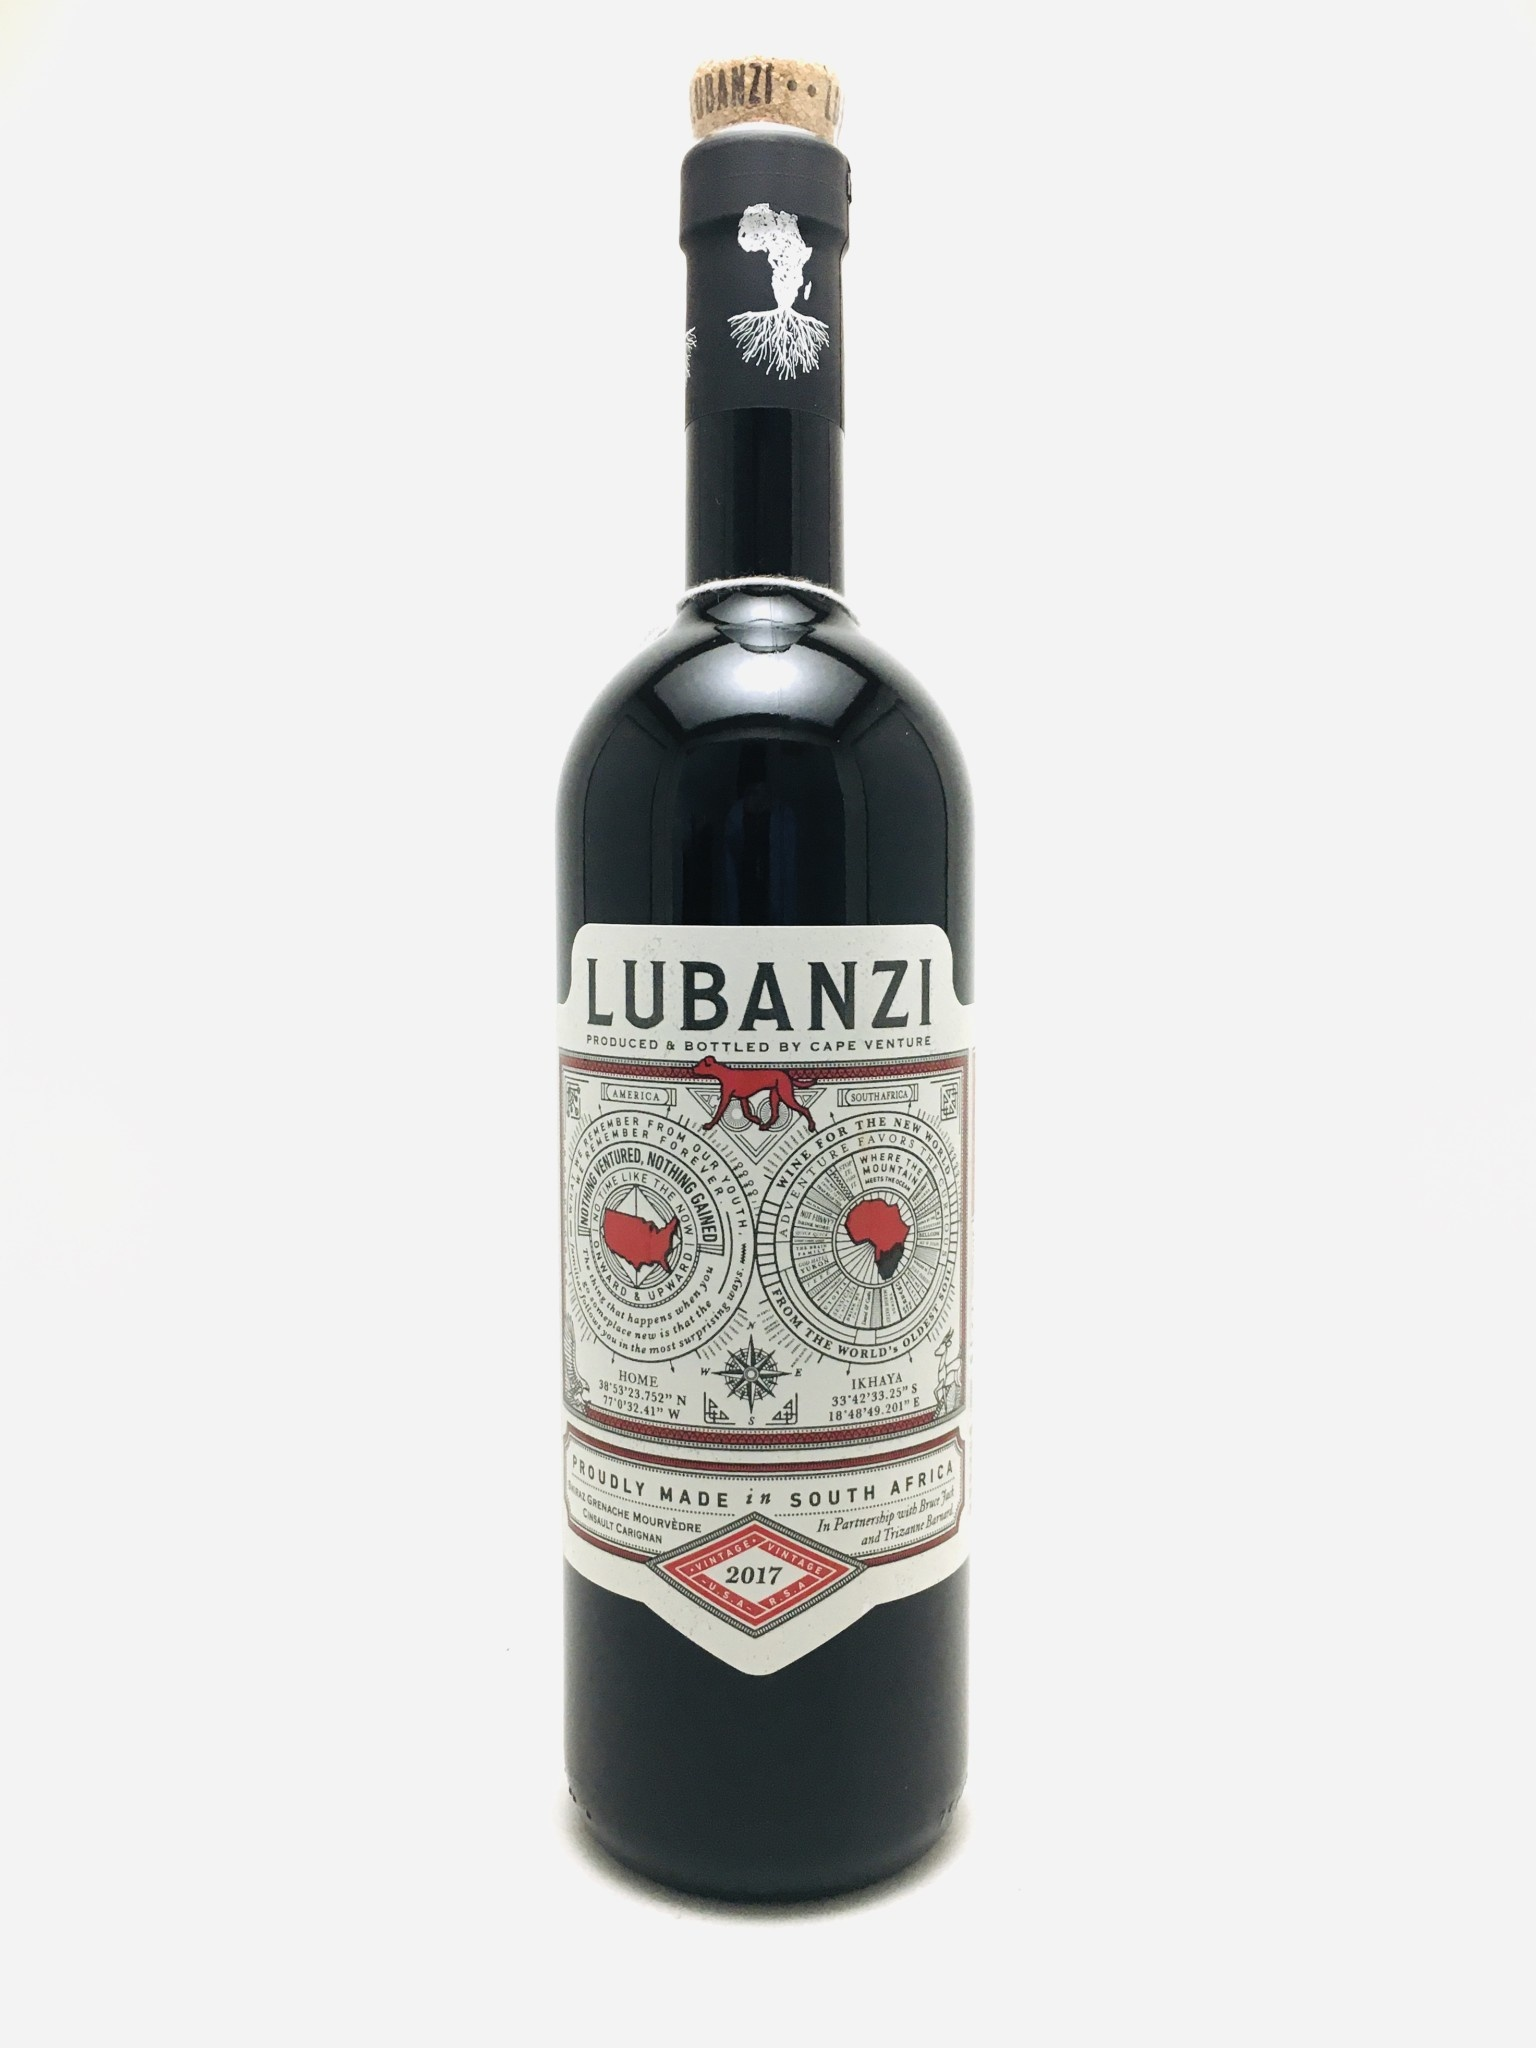 Lubanzi Red Blend Coastal Region South Africa 2019